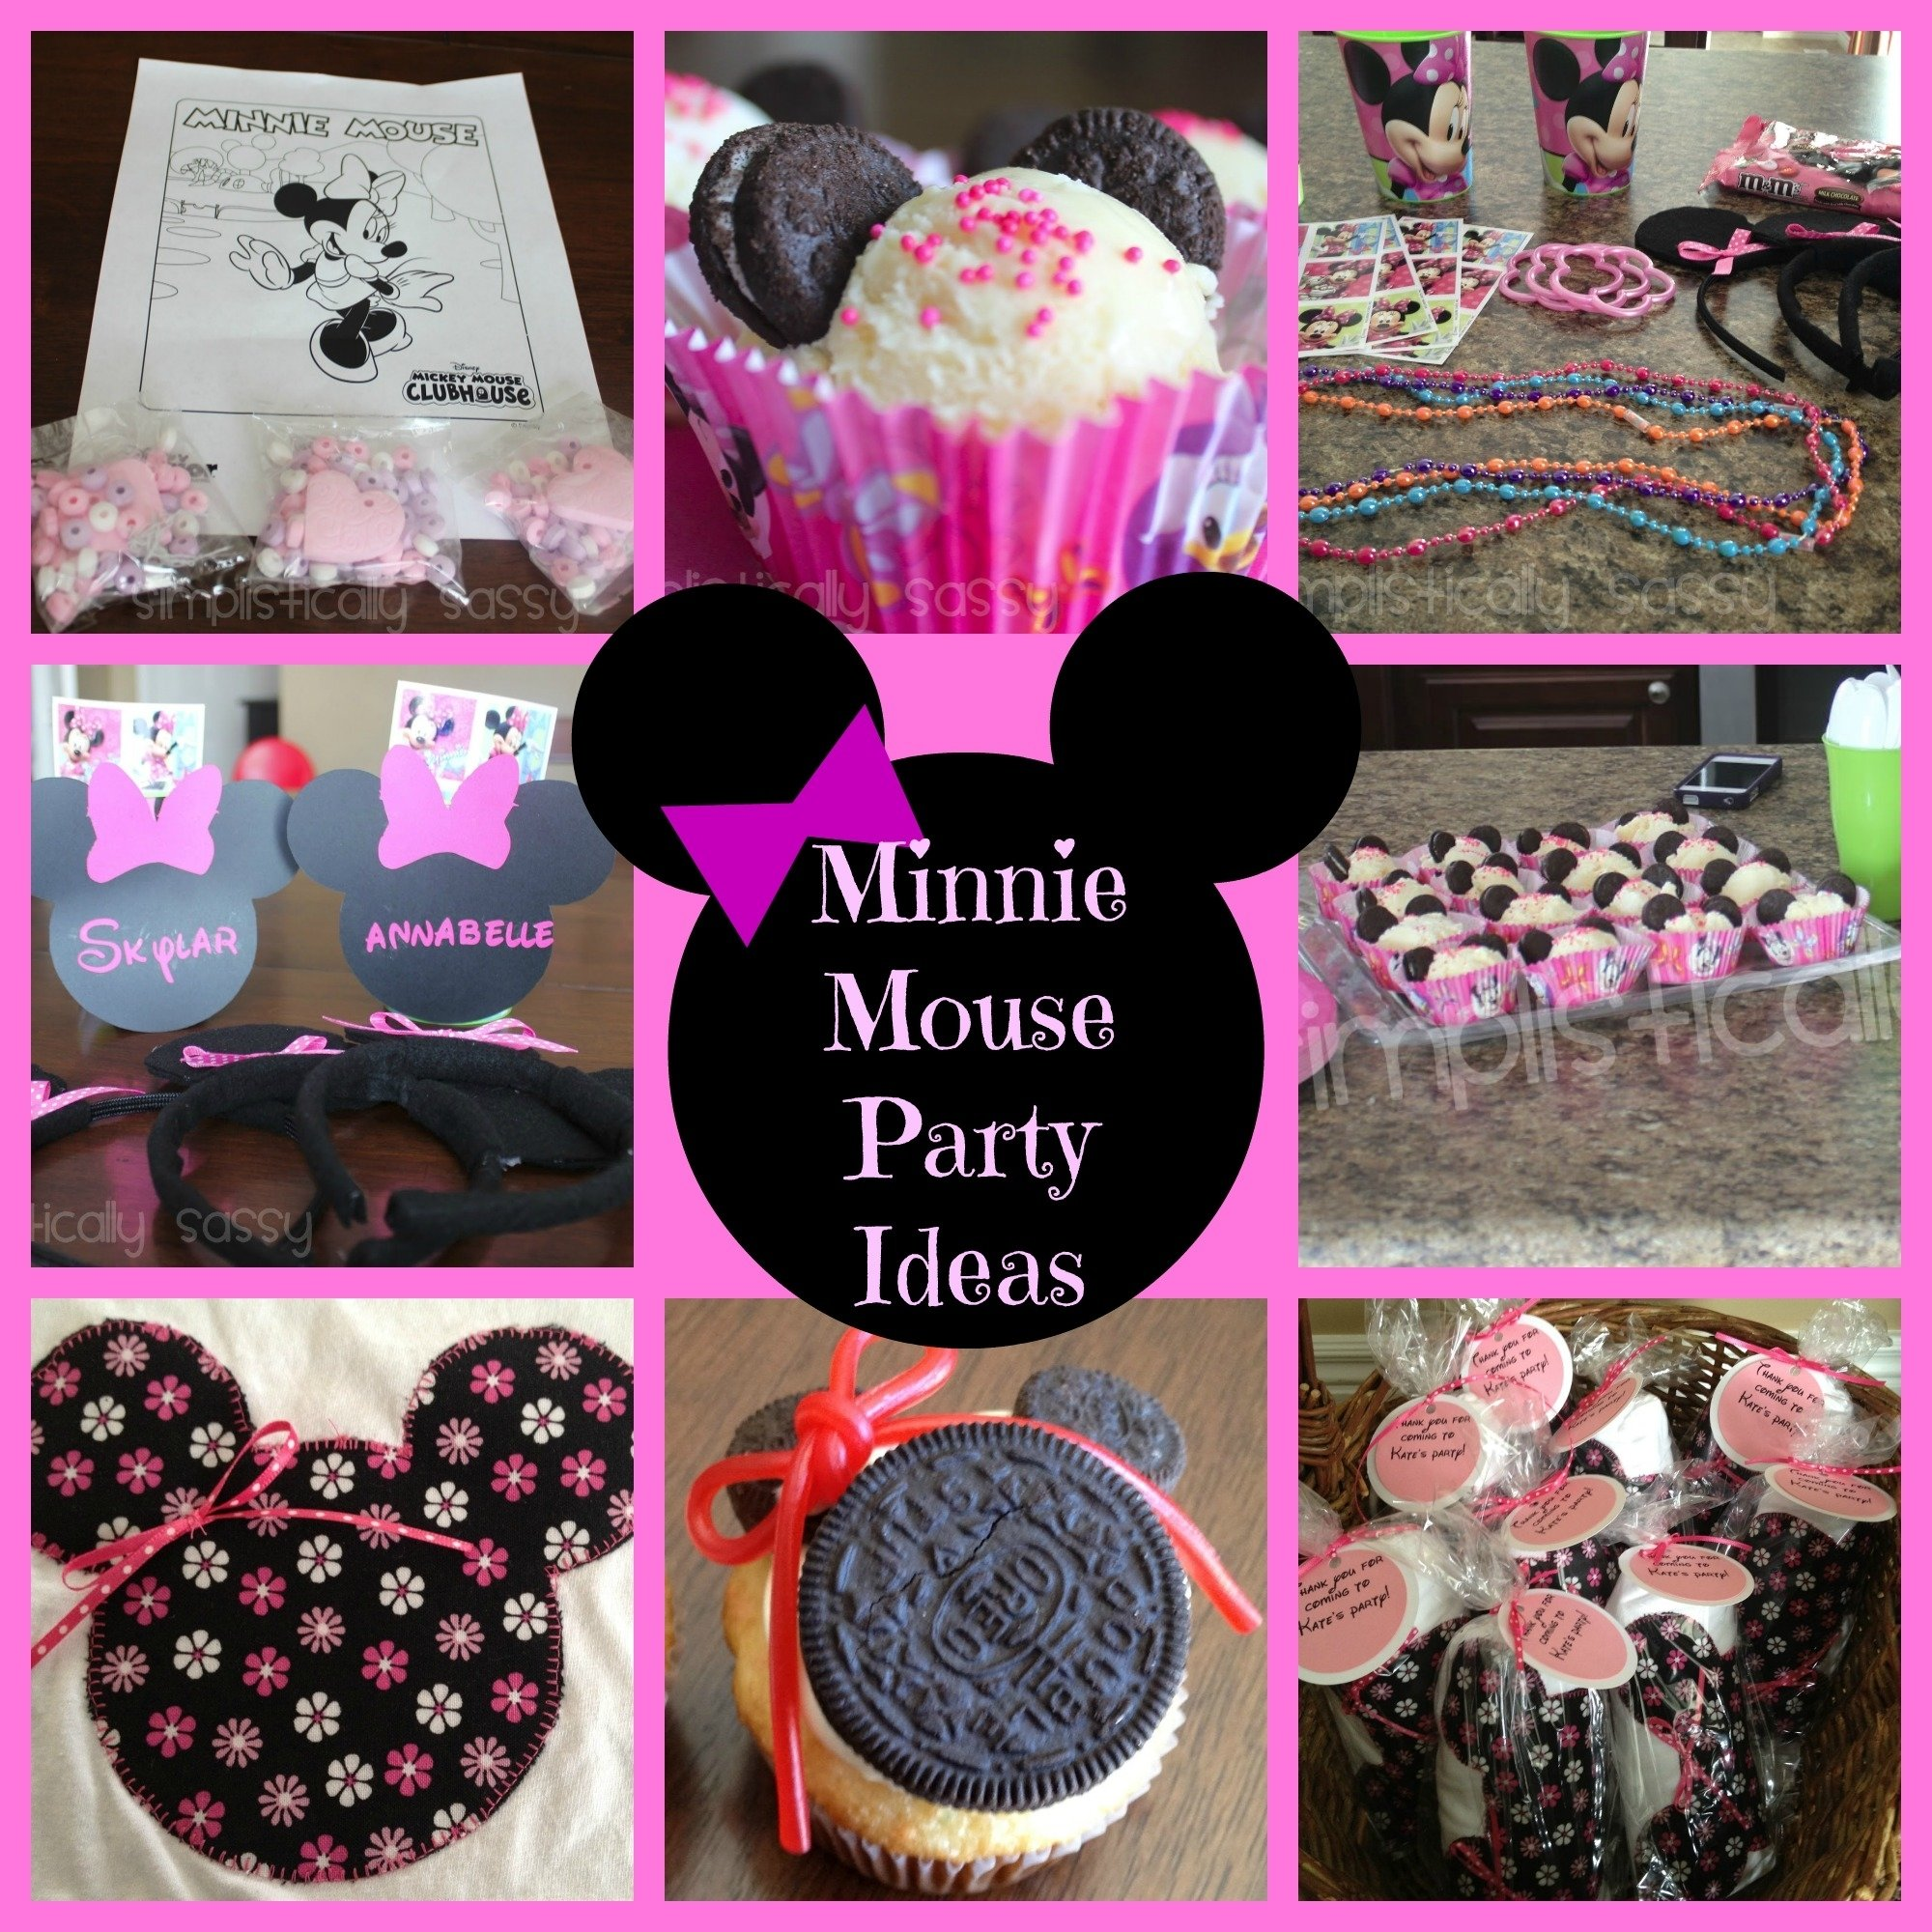 10 Unique Ideas For Minnie Mouse Party minnie mouse party ideas events to celebrate 16 2021